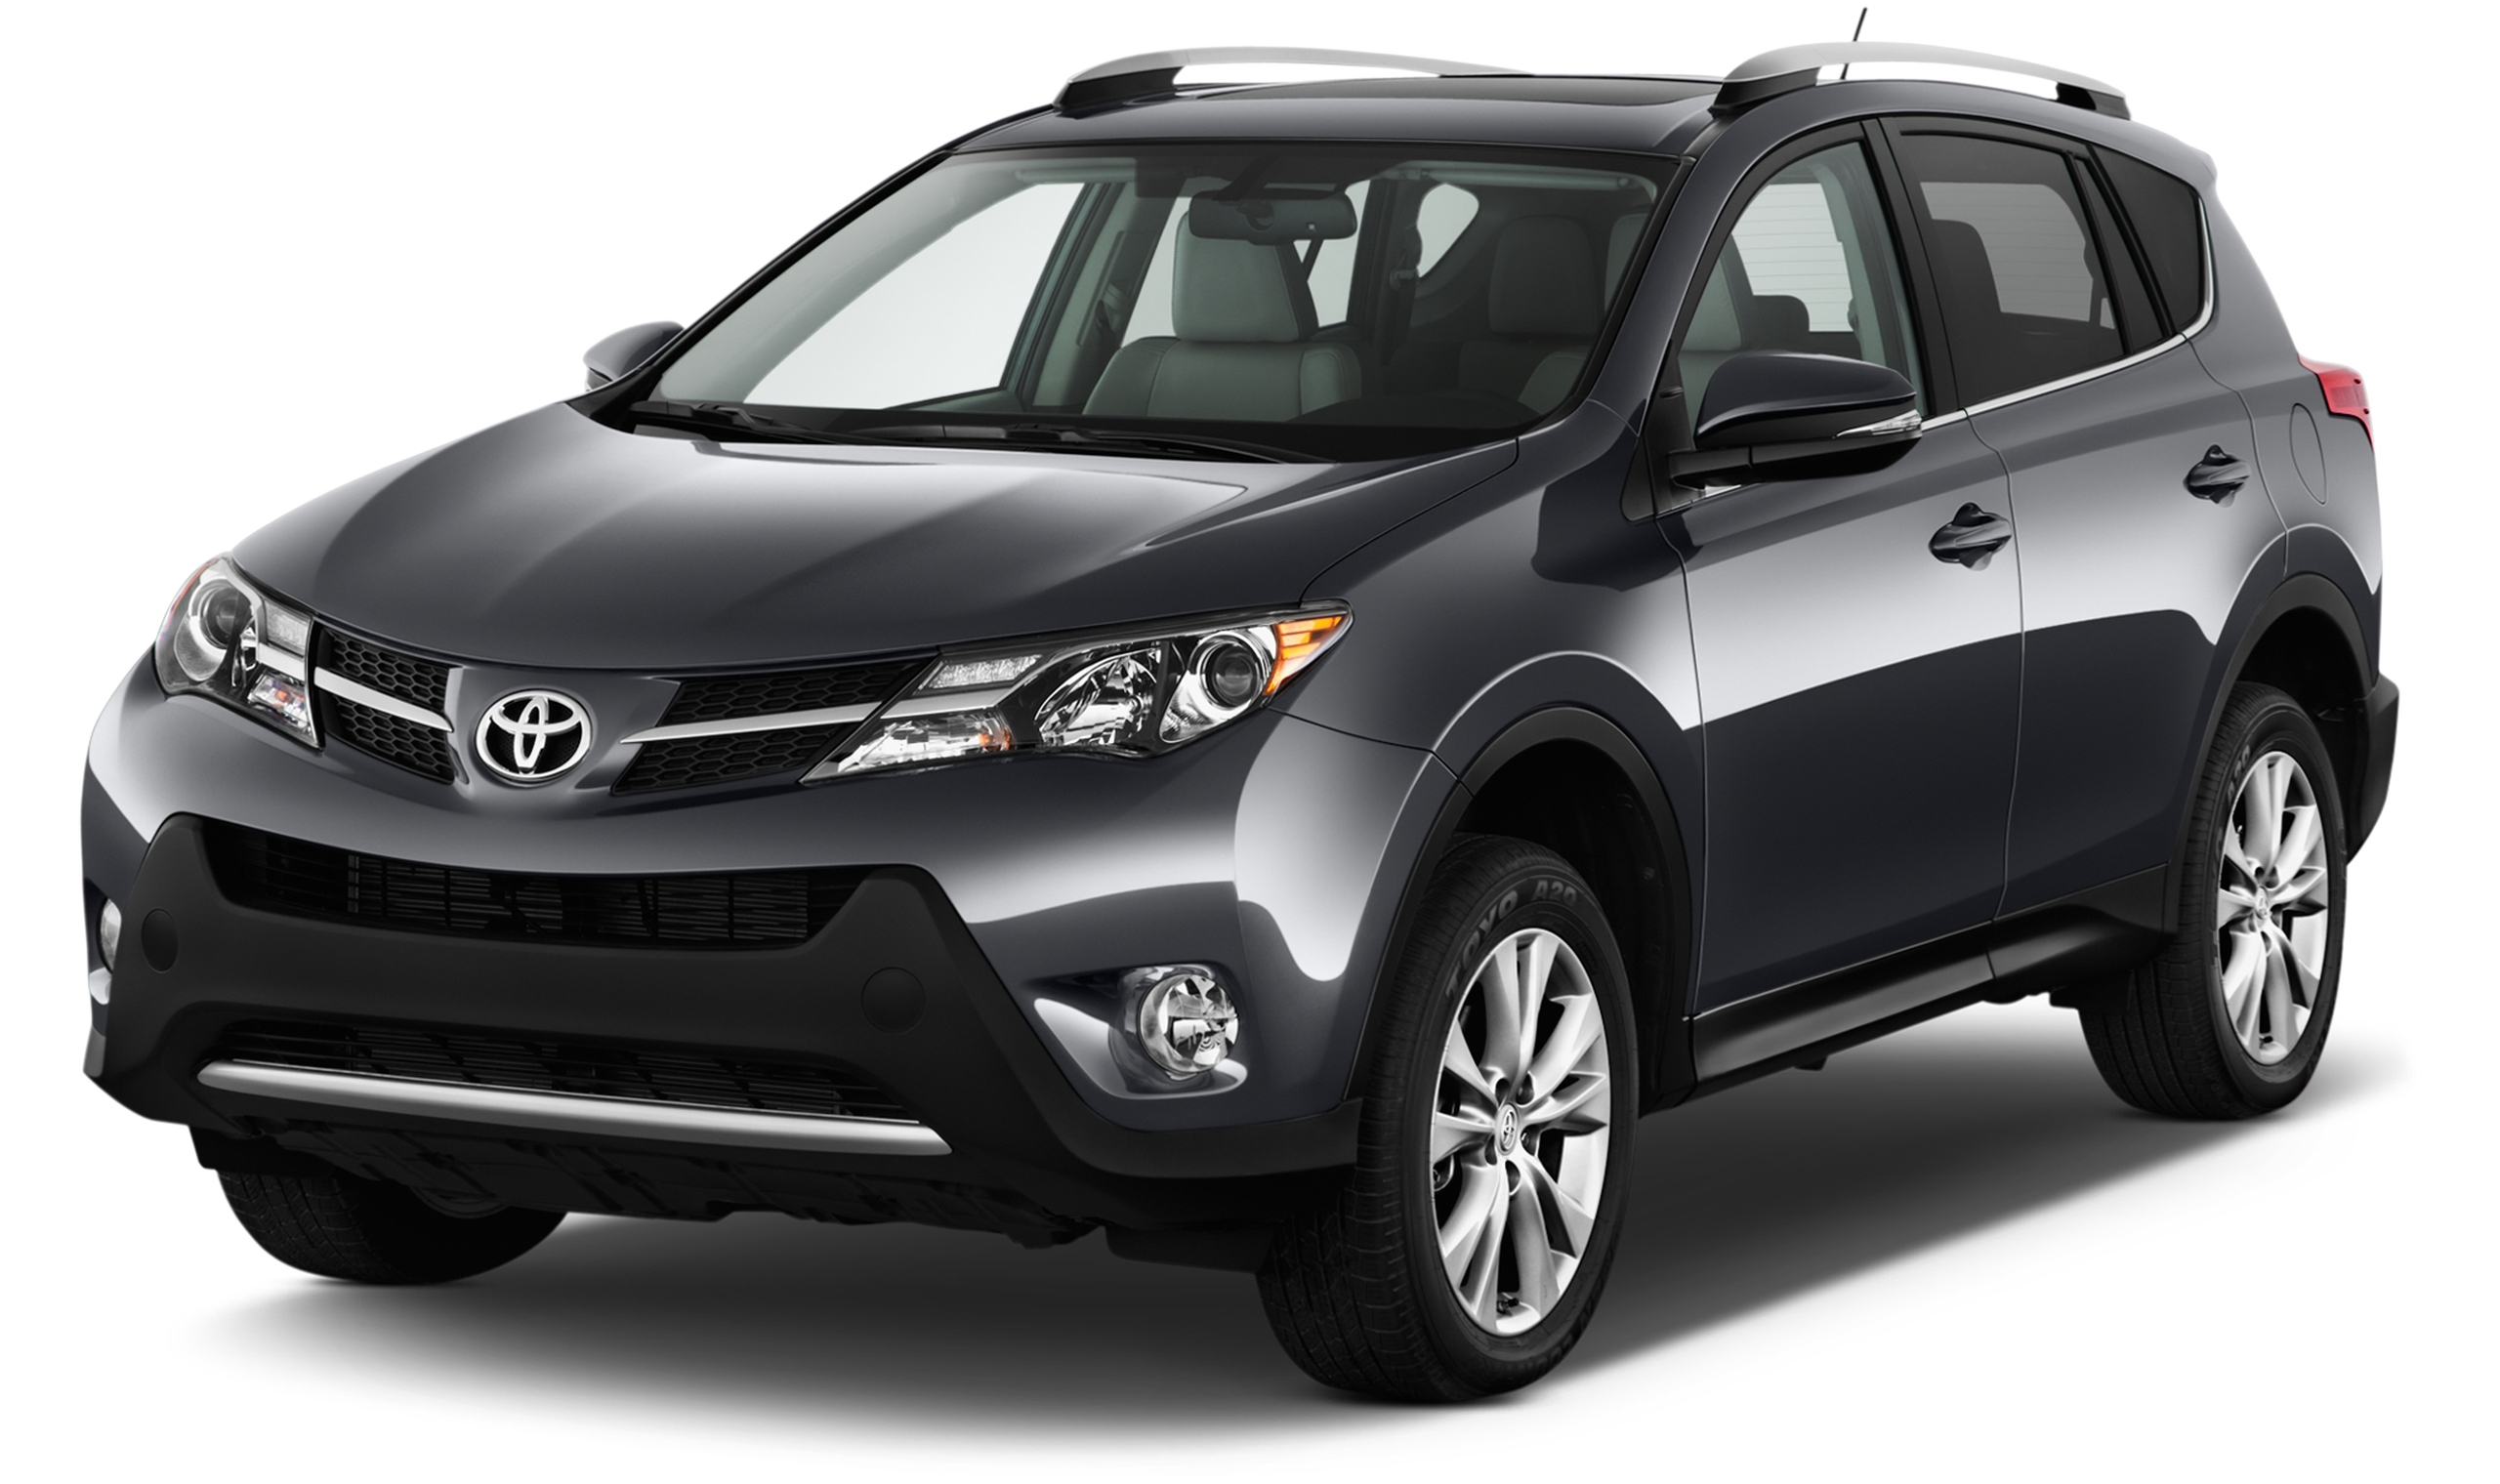 avis car hire rent a midsize suv in canada for your holiday. Black Bedroom Furniture Sets. Home Design Ideas